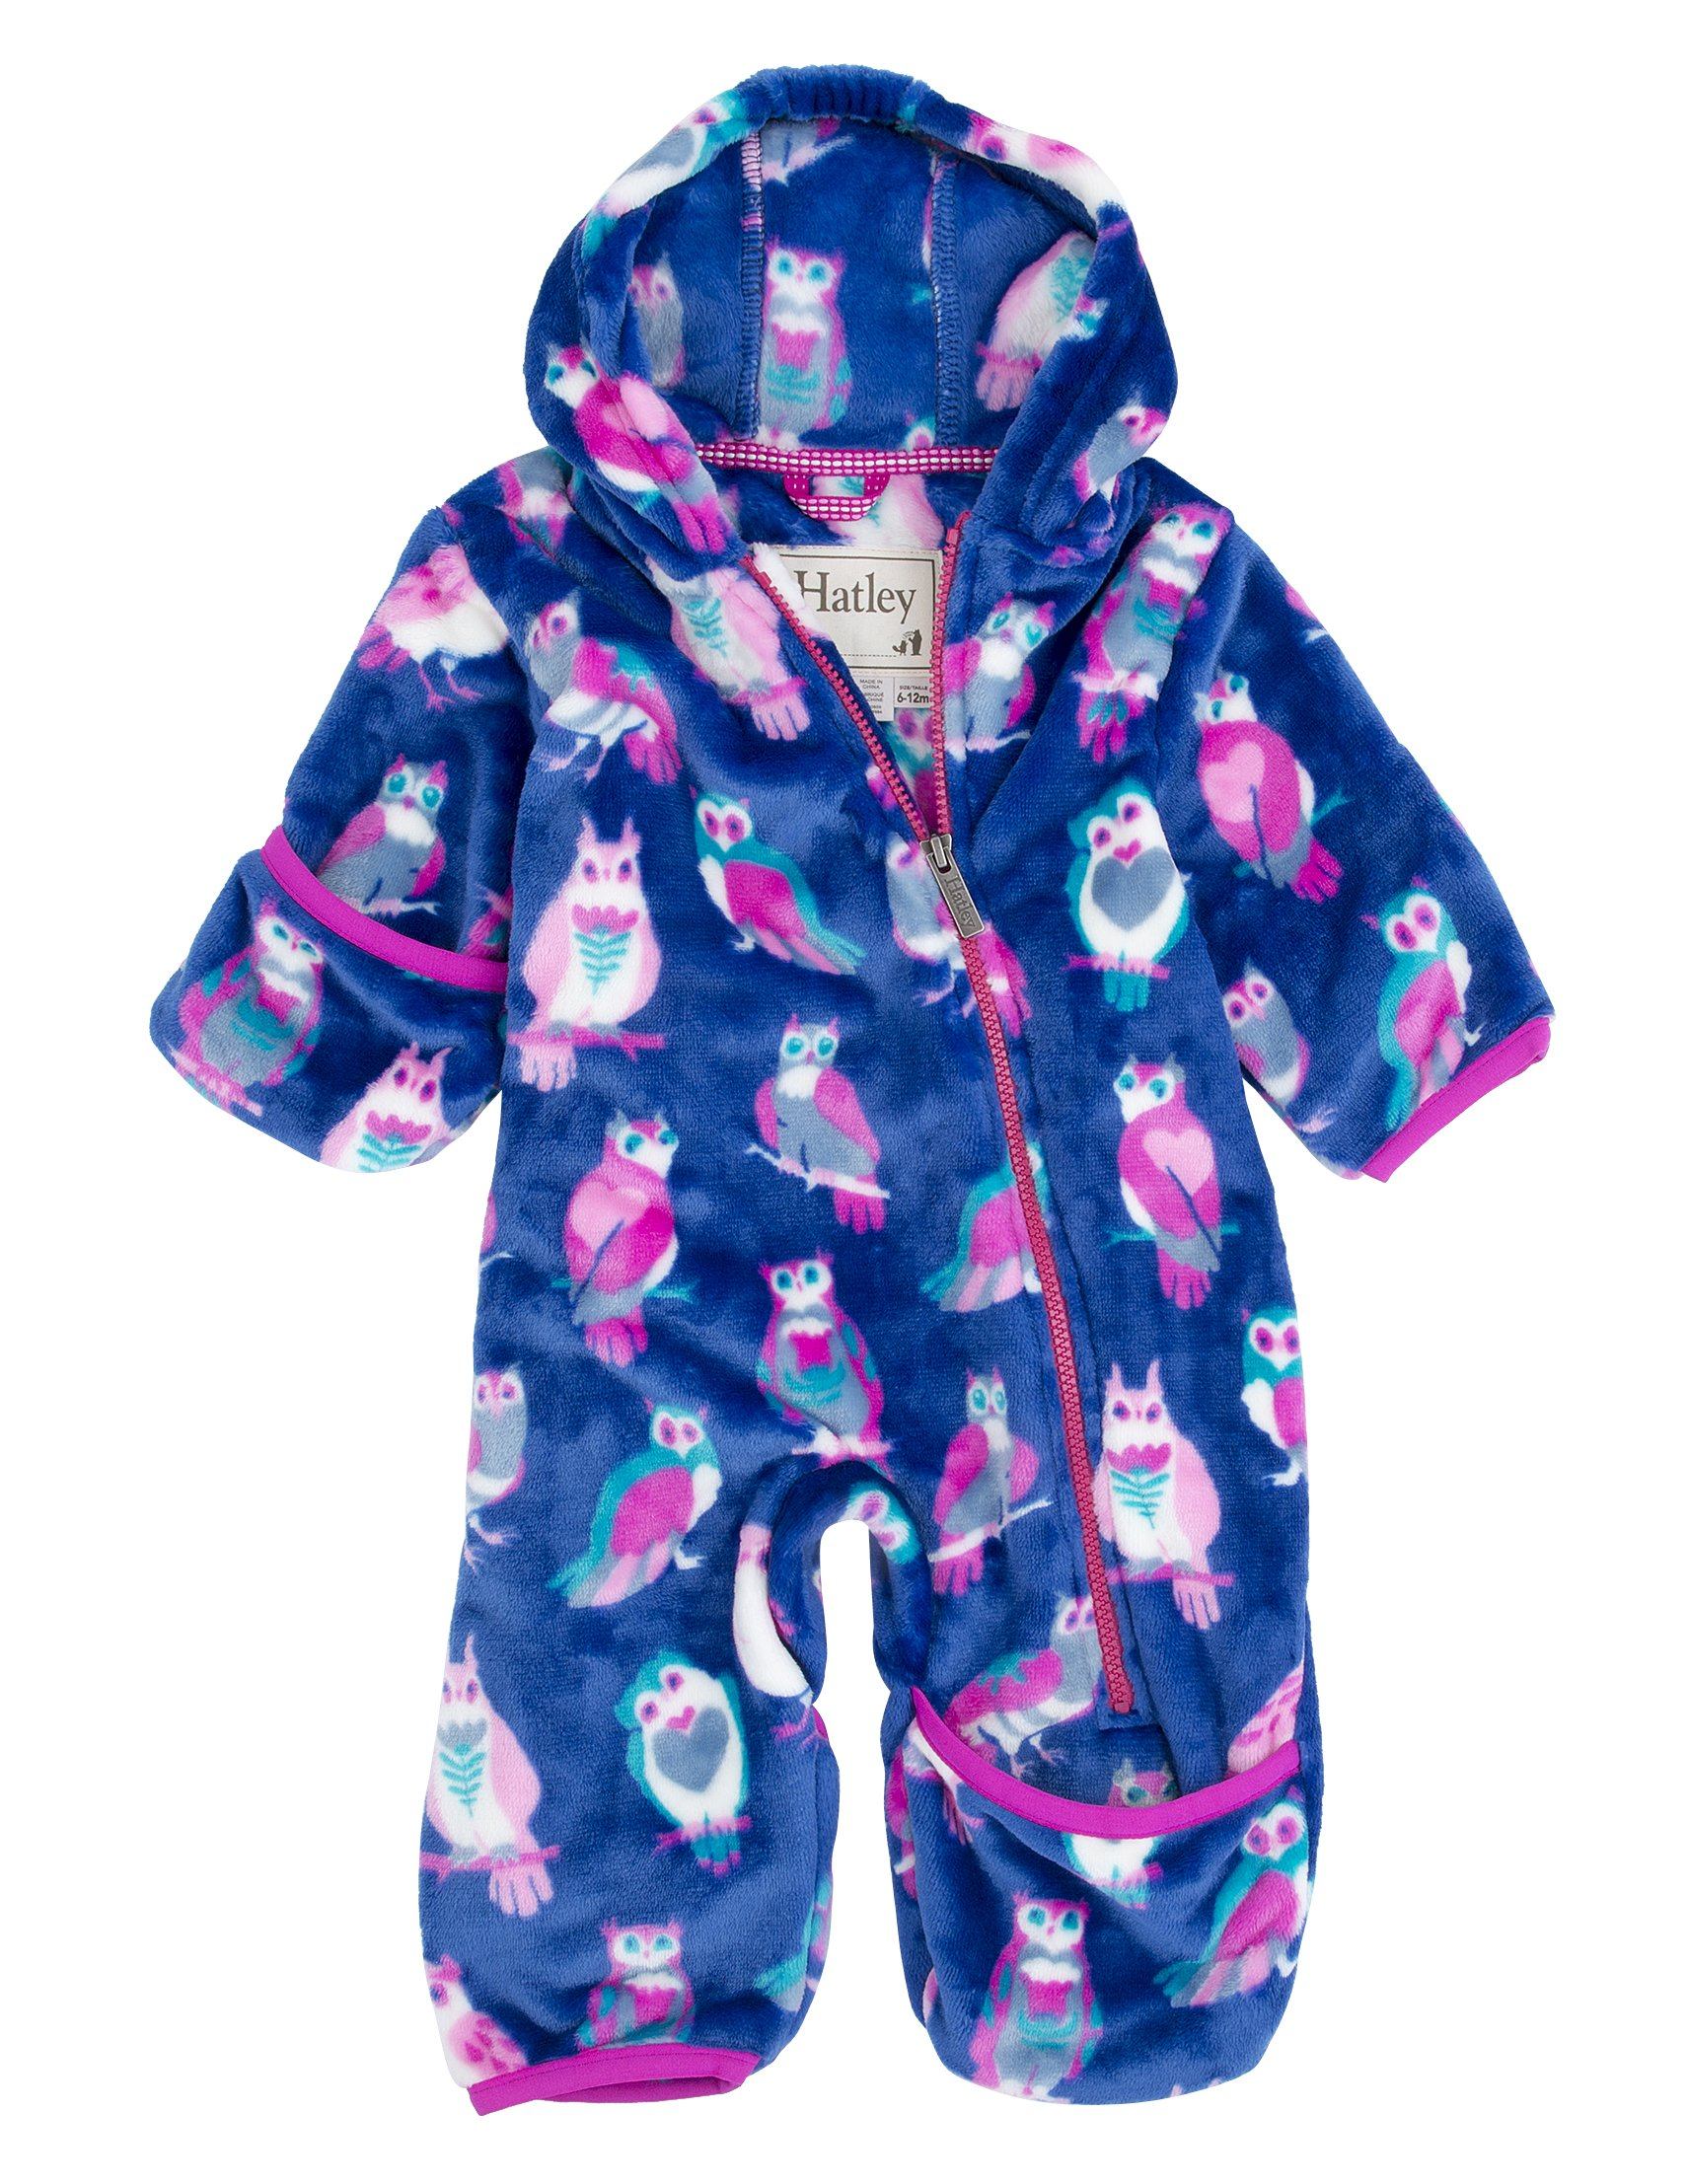 Hatley Babies' Fuzzy Fleece Bundler, Happy Owls, 6-12M